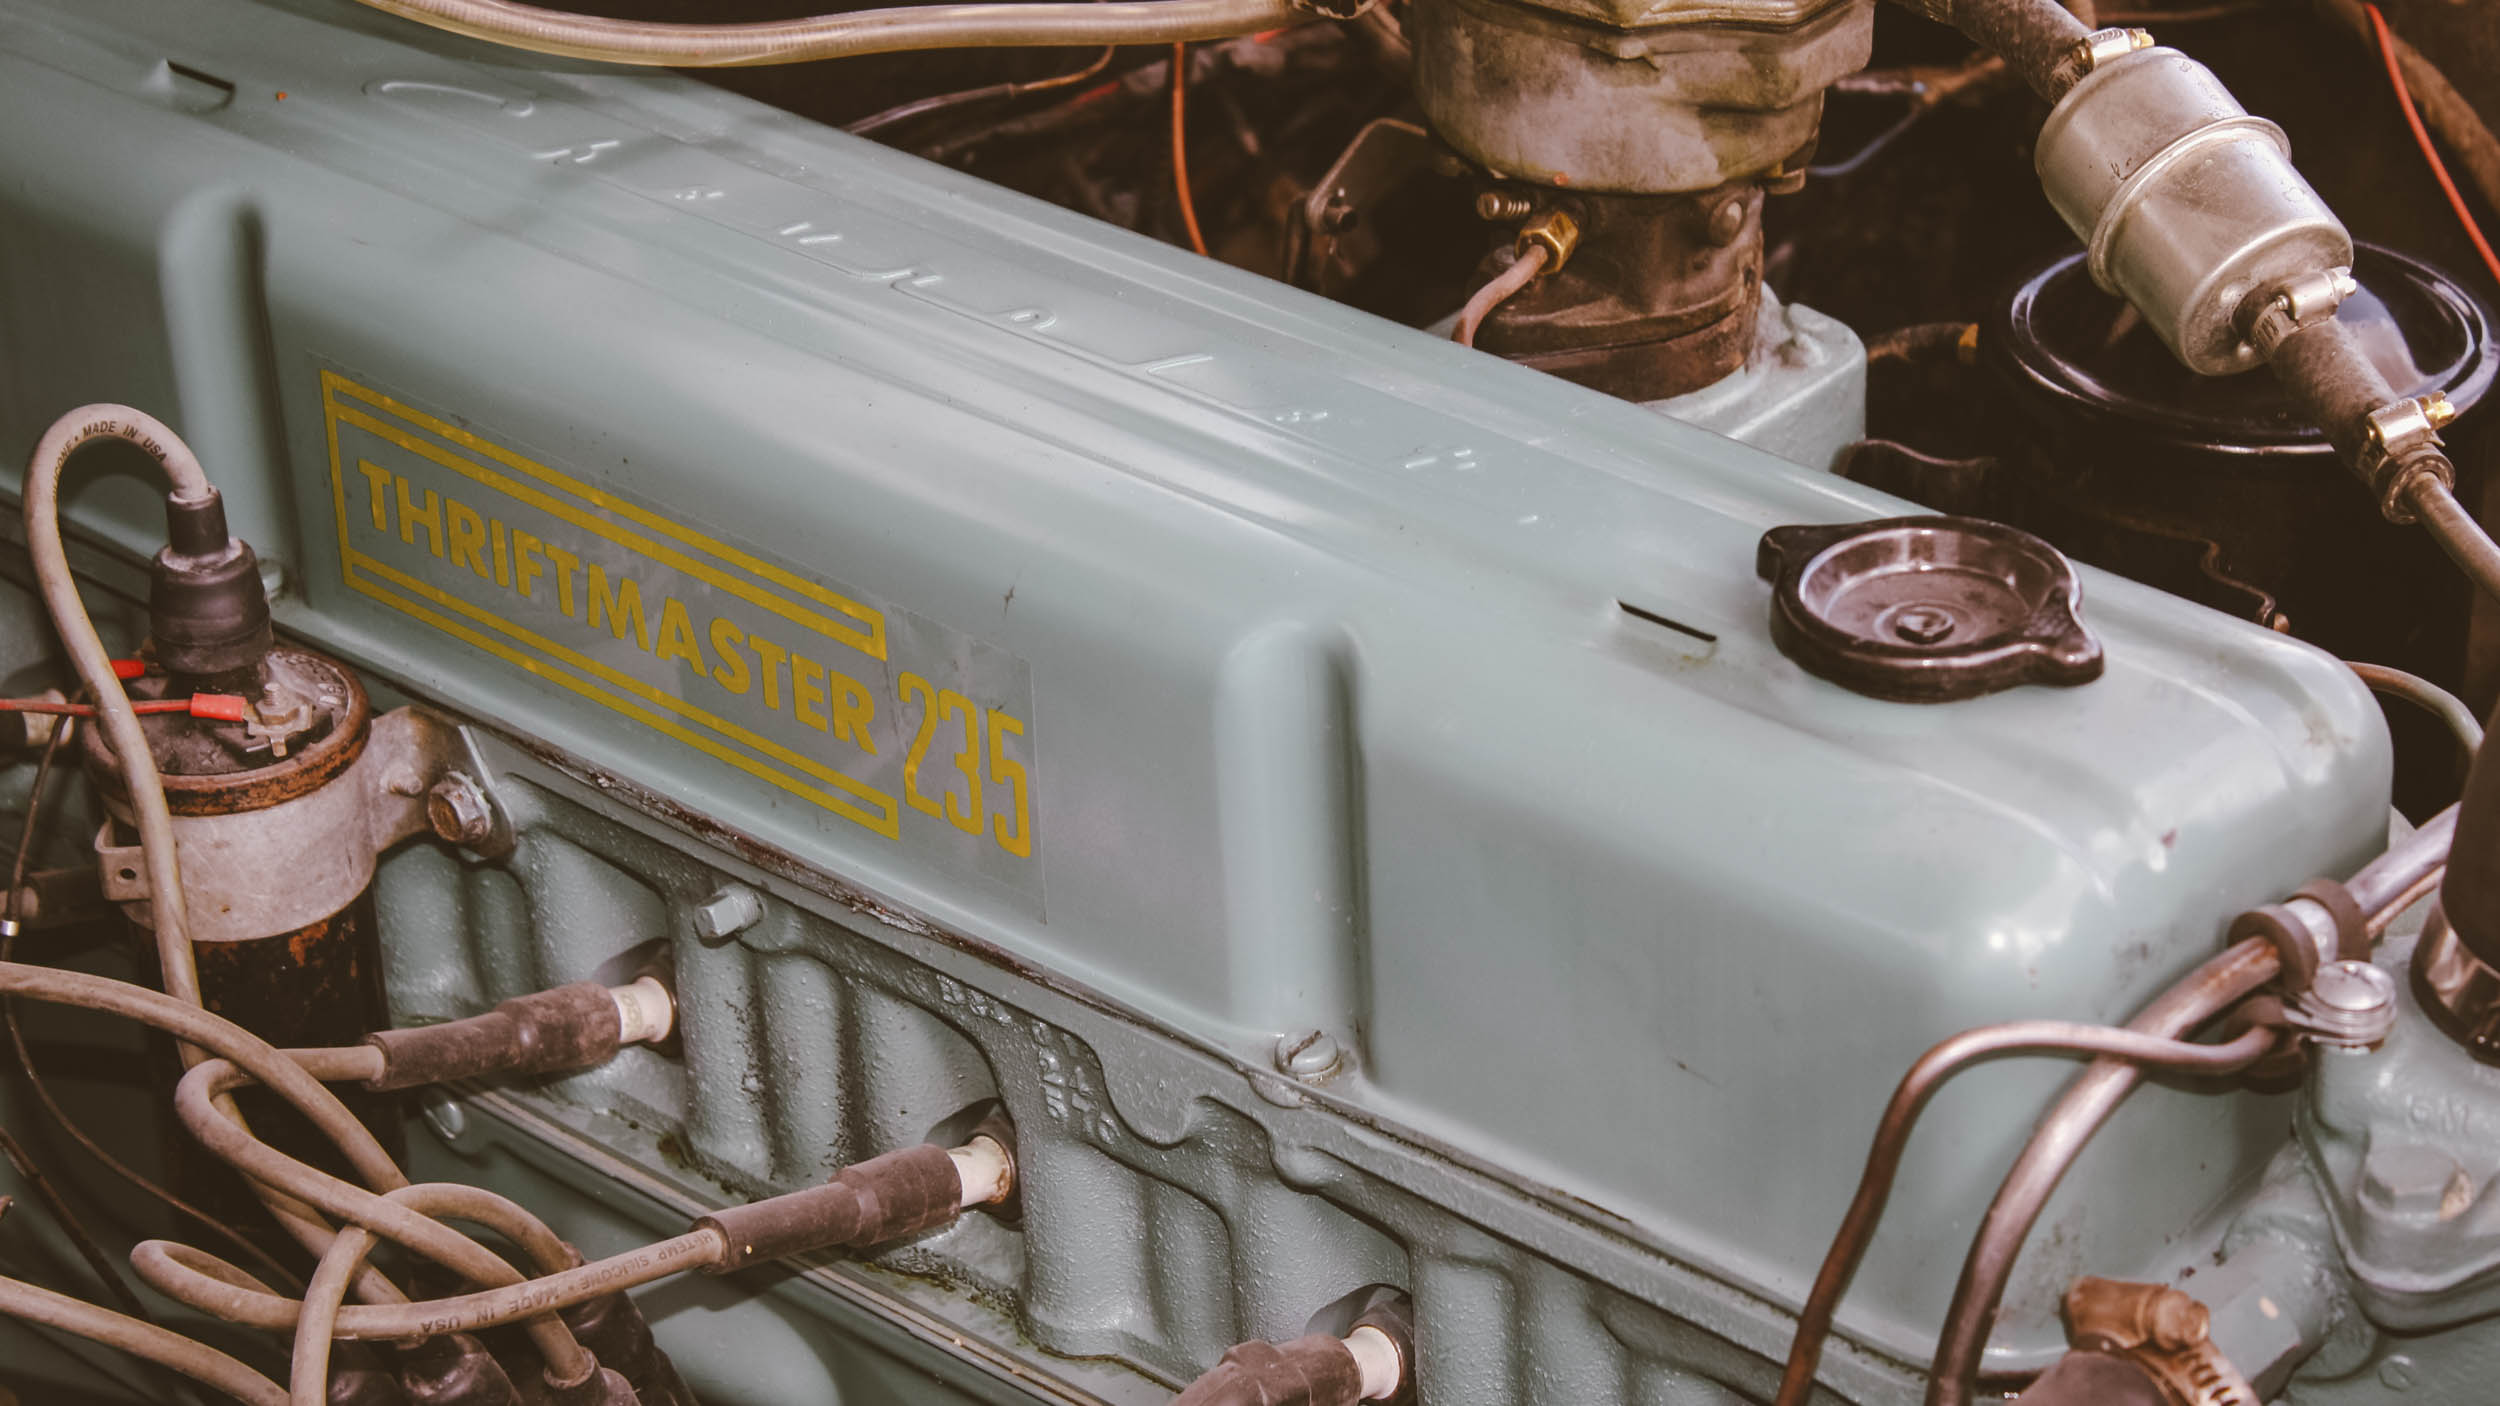 """The """"Thriftmaster"""" sticker sets this engine apart as being the 235 for the truck line instead of the 235 for a passenger car."""